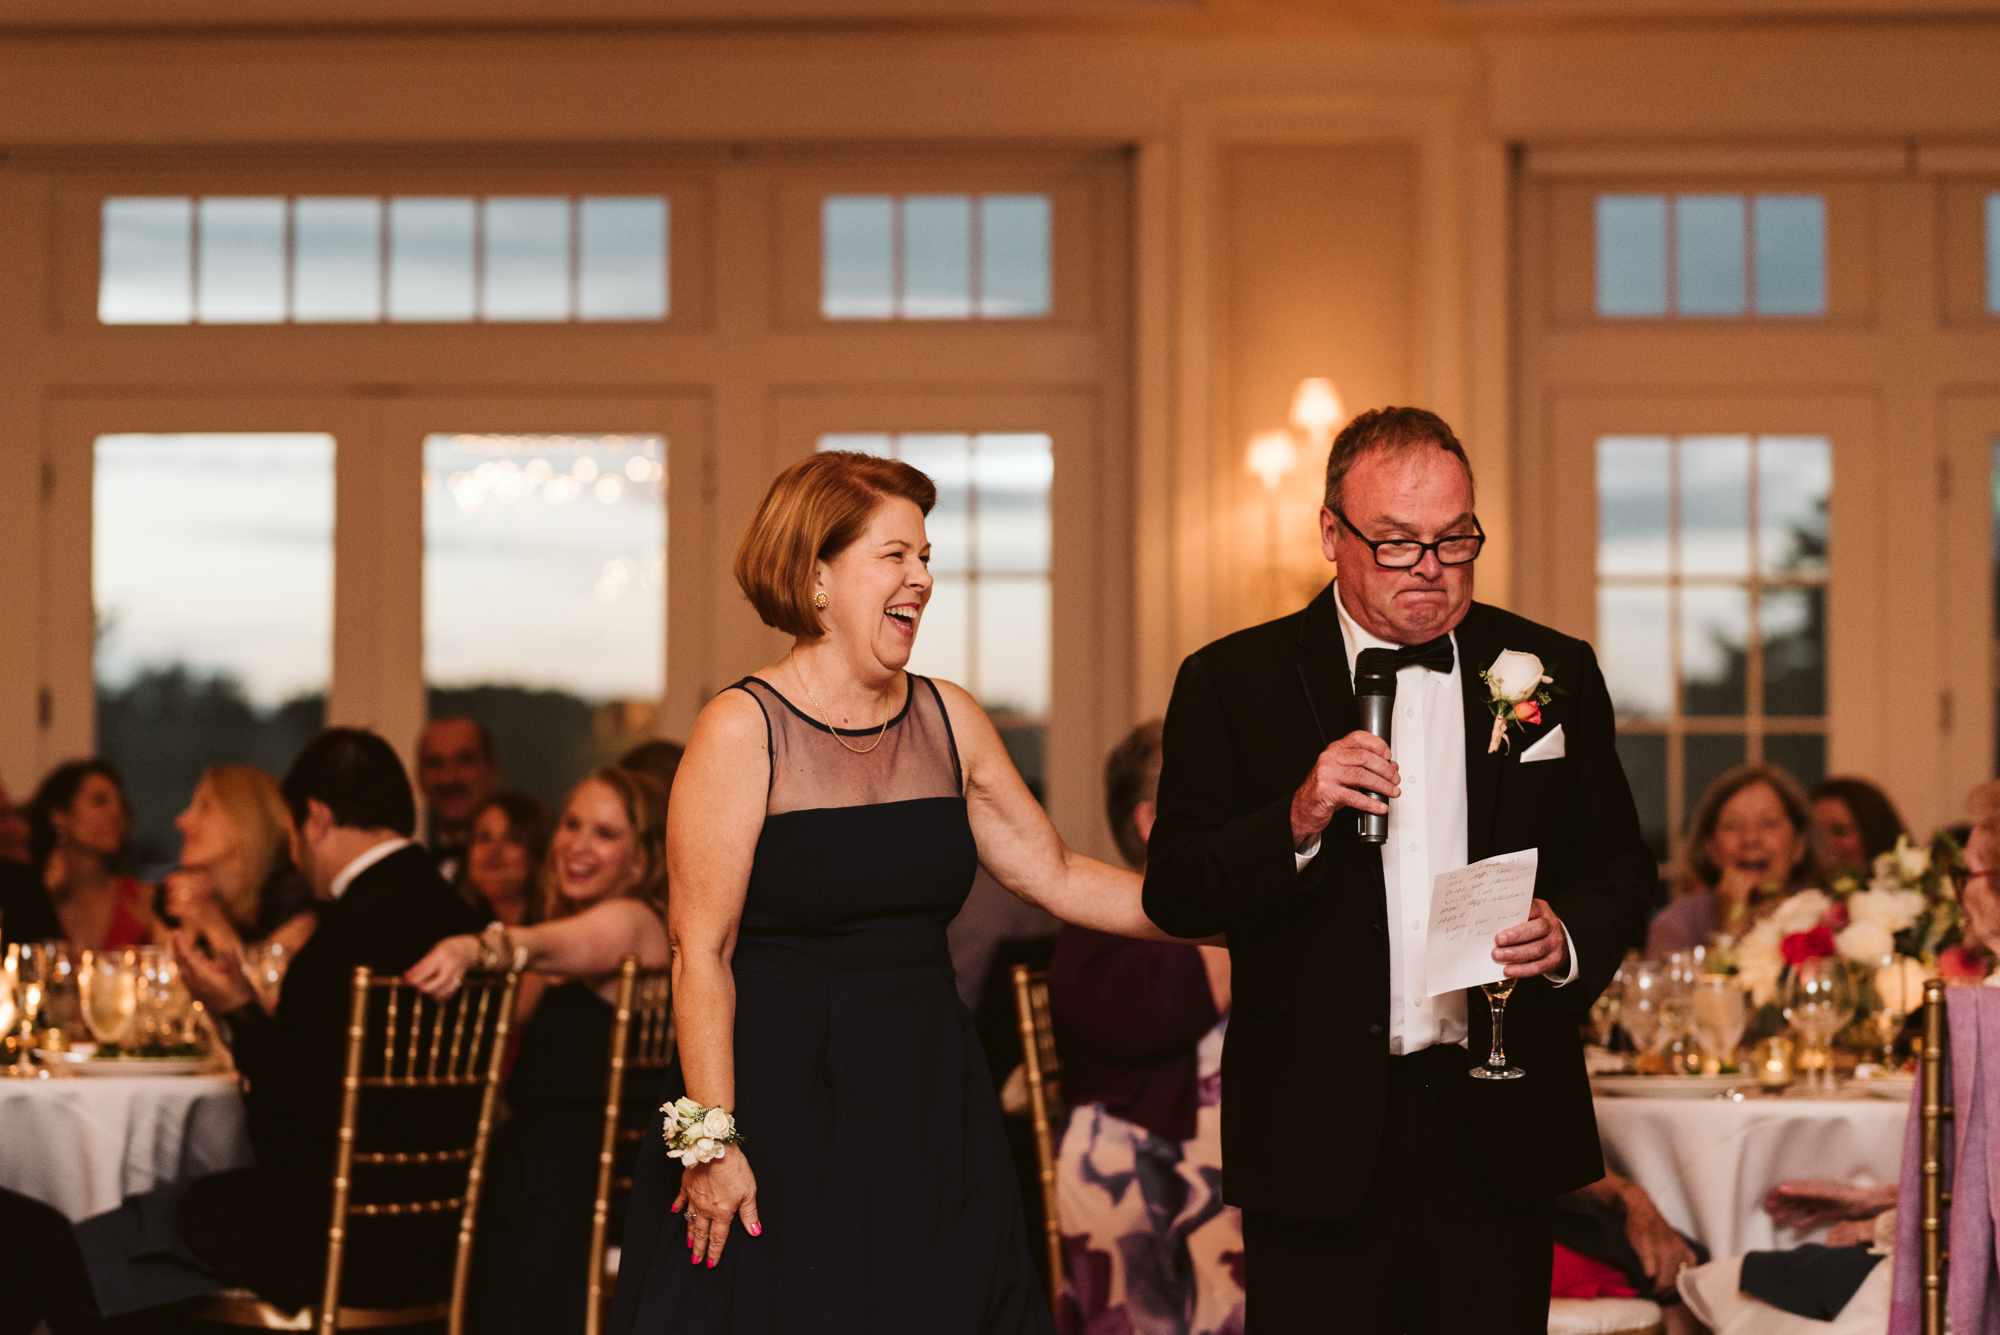 Elegant, Columbia Country Club, Chevy Chase Maryland, Baltimore Wedding Photographer, Classic, Traditional, Mom and Dad Giving Toasts at Wedding Reception, Wedding Guests Laughing